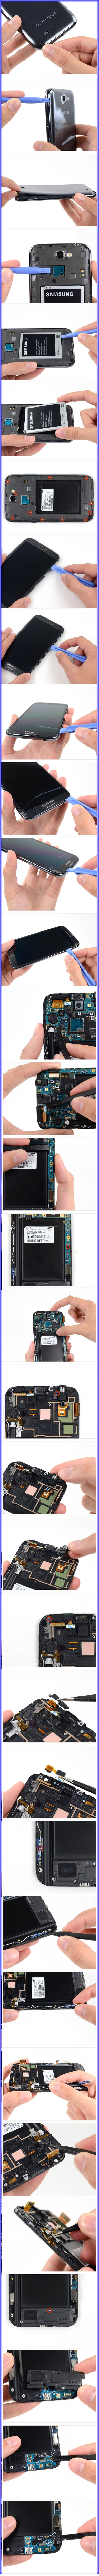 Samsung-Galaxy-Note-II-Display-Assembly-Replacement